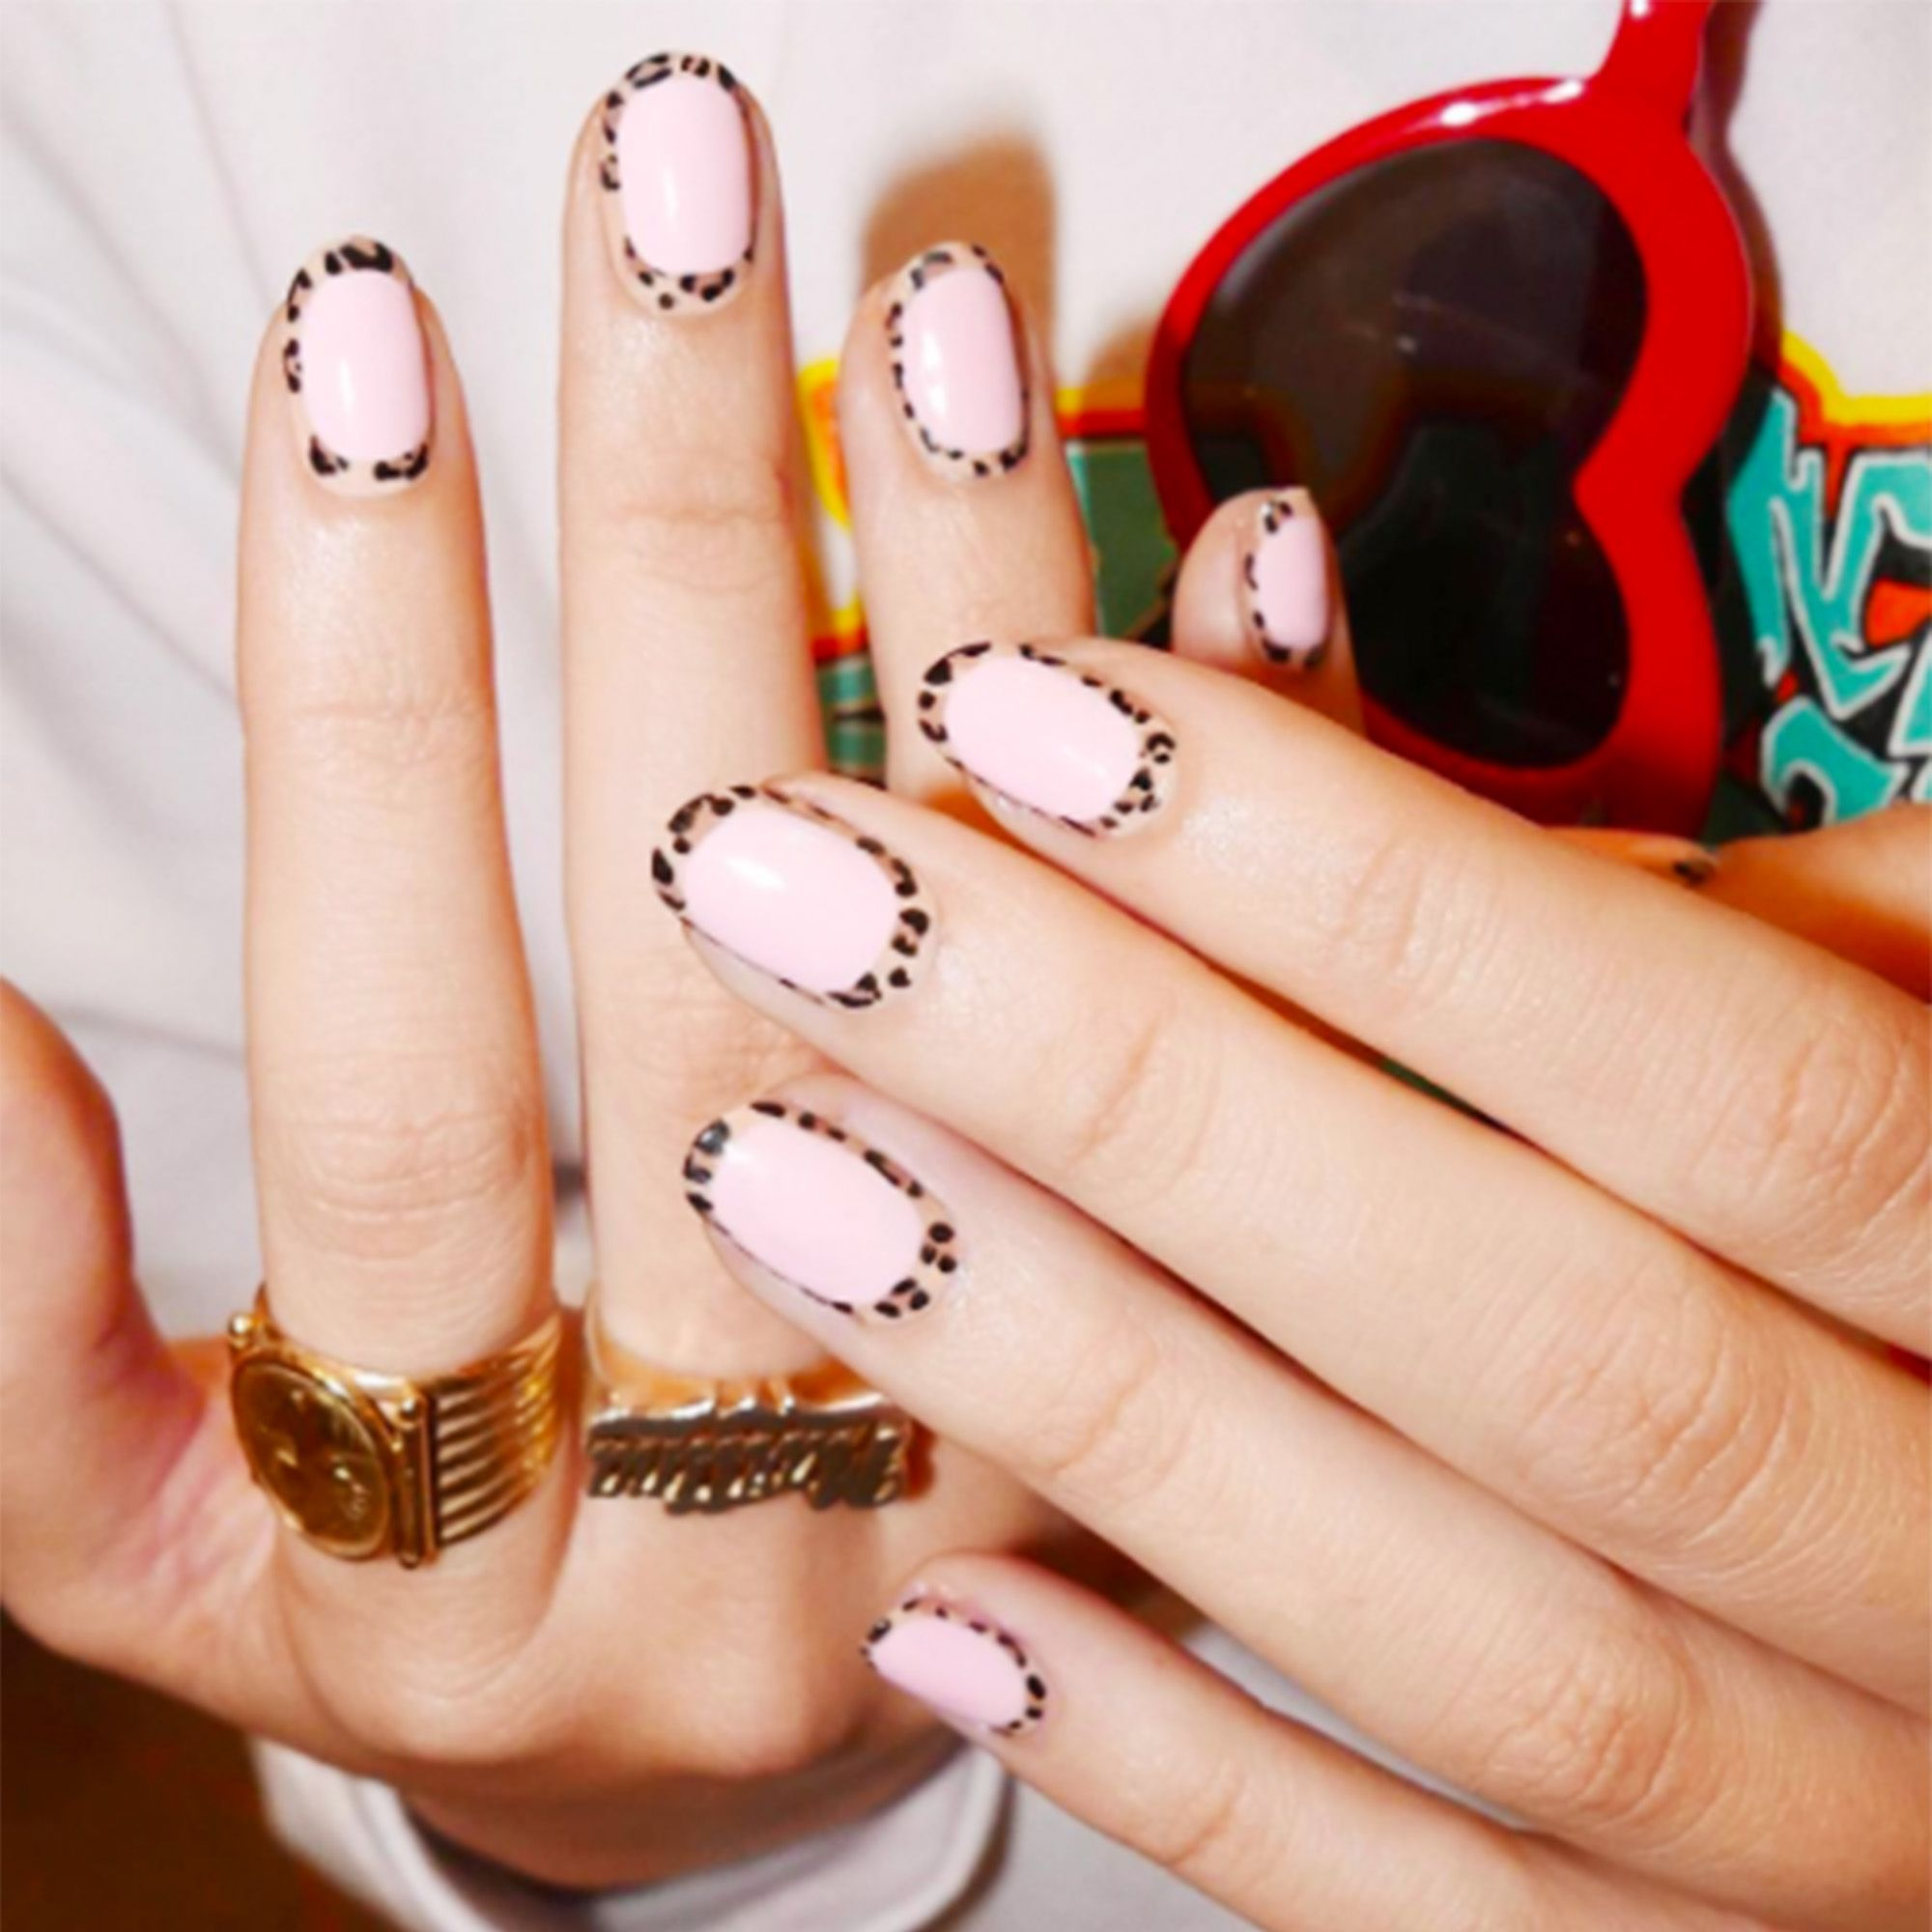 15 Nail Designs We'll Never Be Able ToDo forecasting